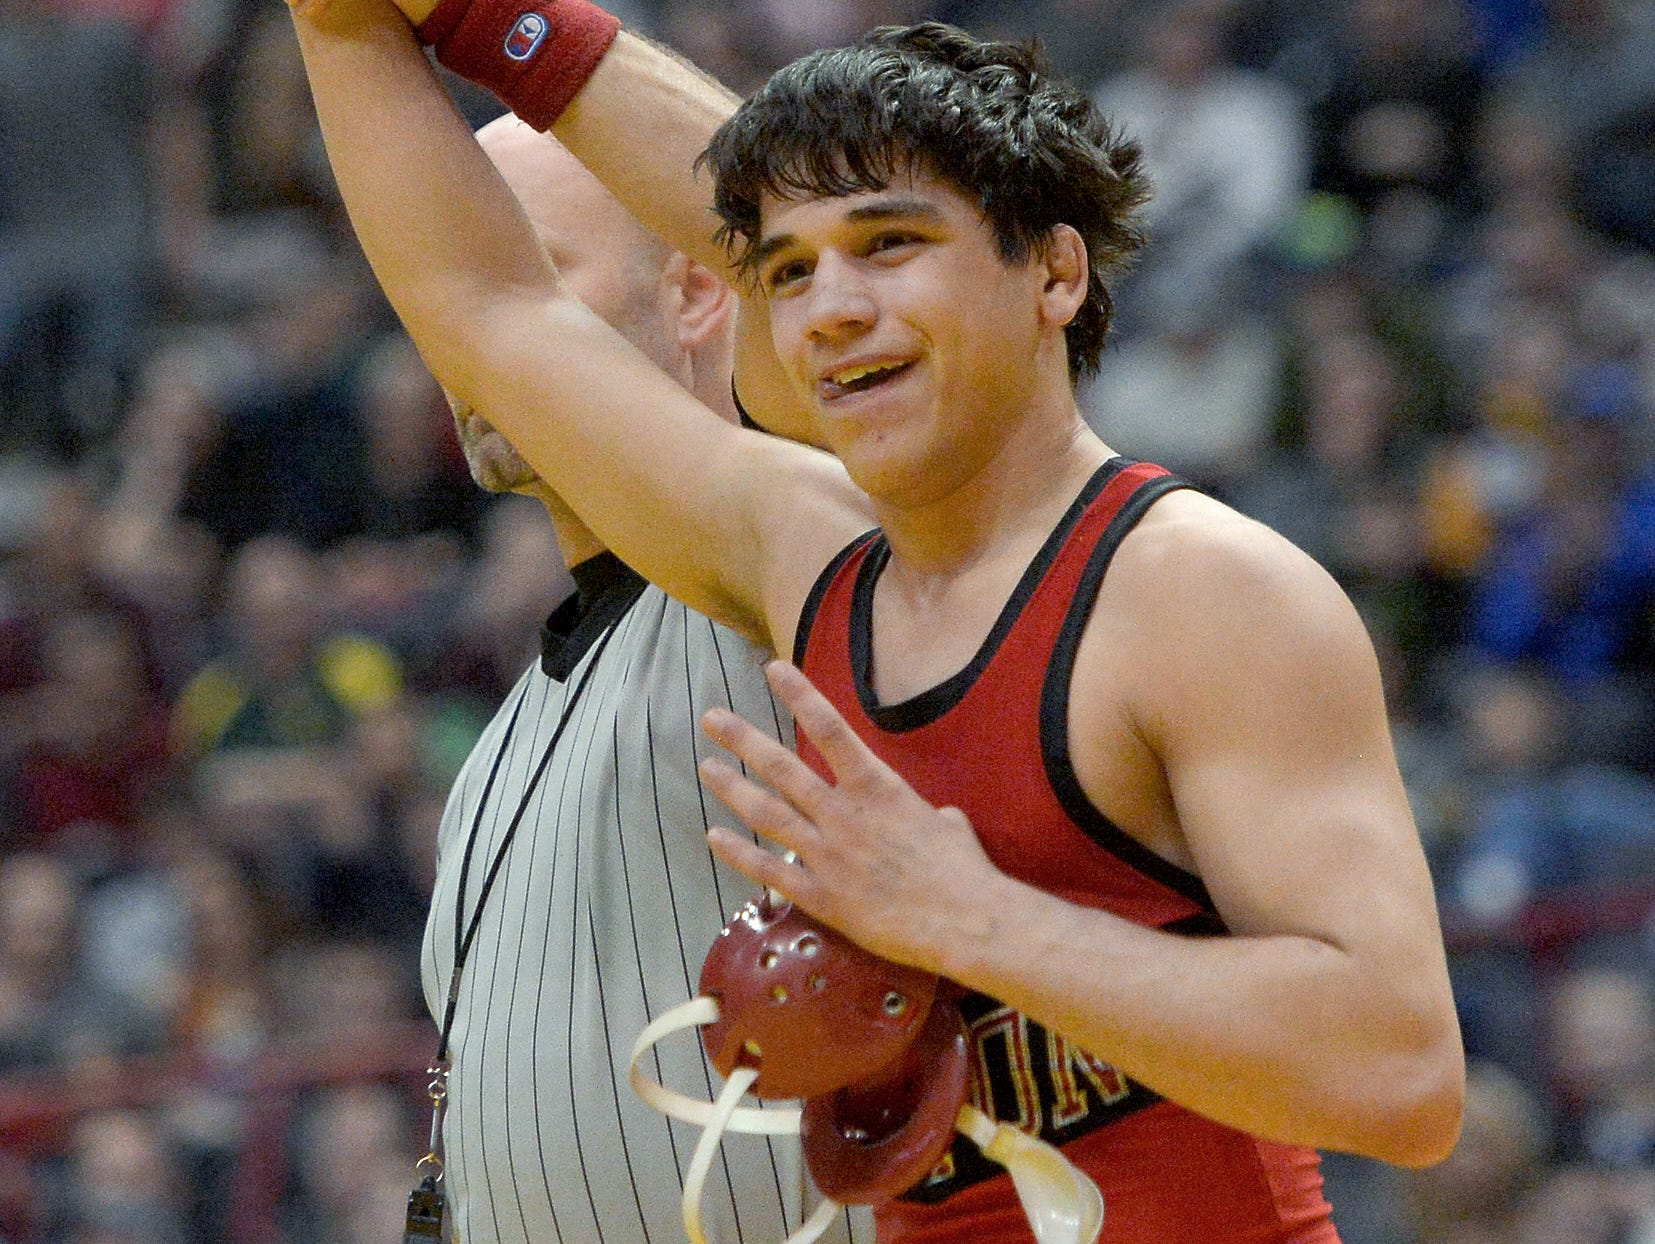 Hilton's Yianni Diakomihalis celebrates his fourth state title after winning the finals of the 138-pound class (Division I) during the NYSPHSAA 2016 State Wrestling Championships held at the Times Union Center in Albany, N.Y. on Saturday, Feb. 27, 2016.